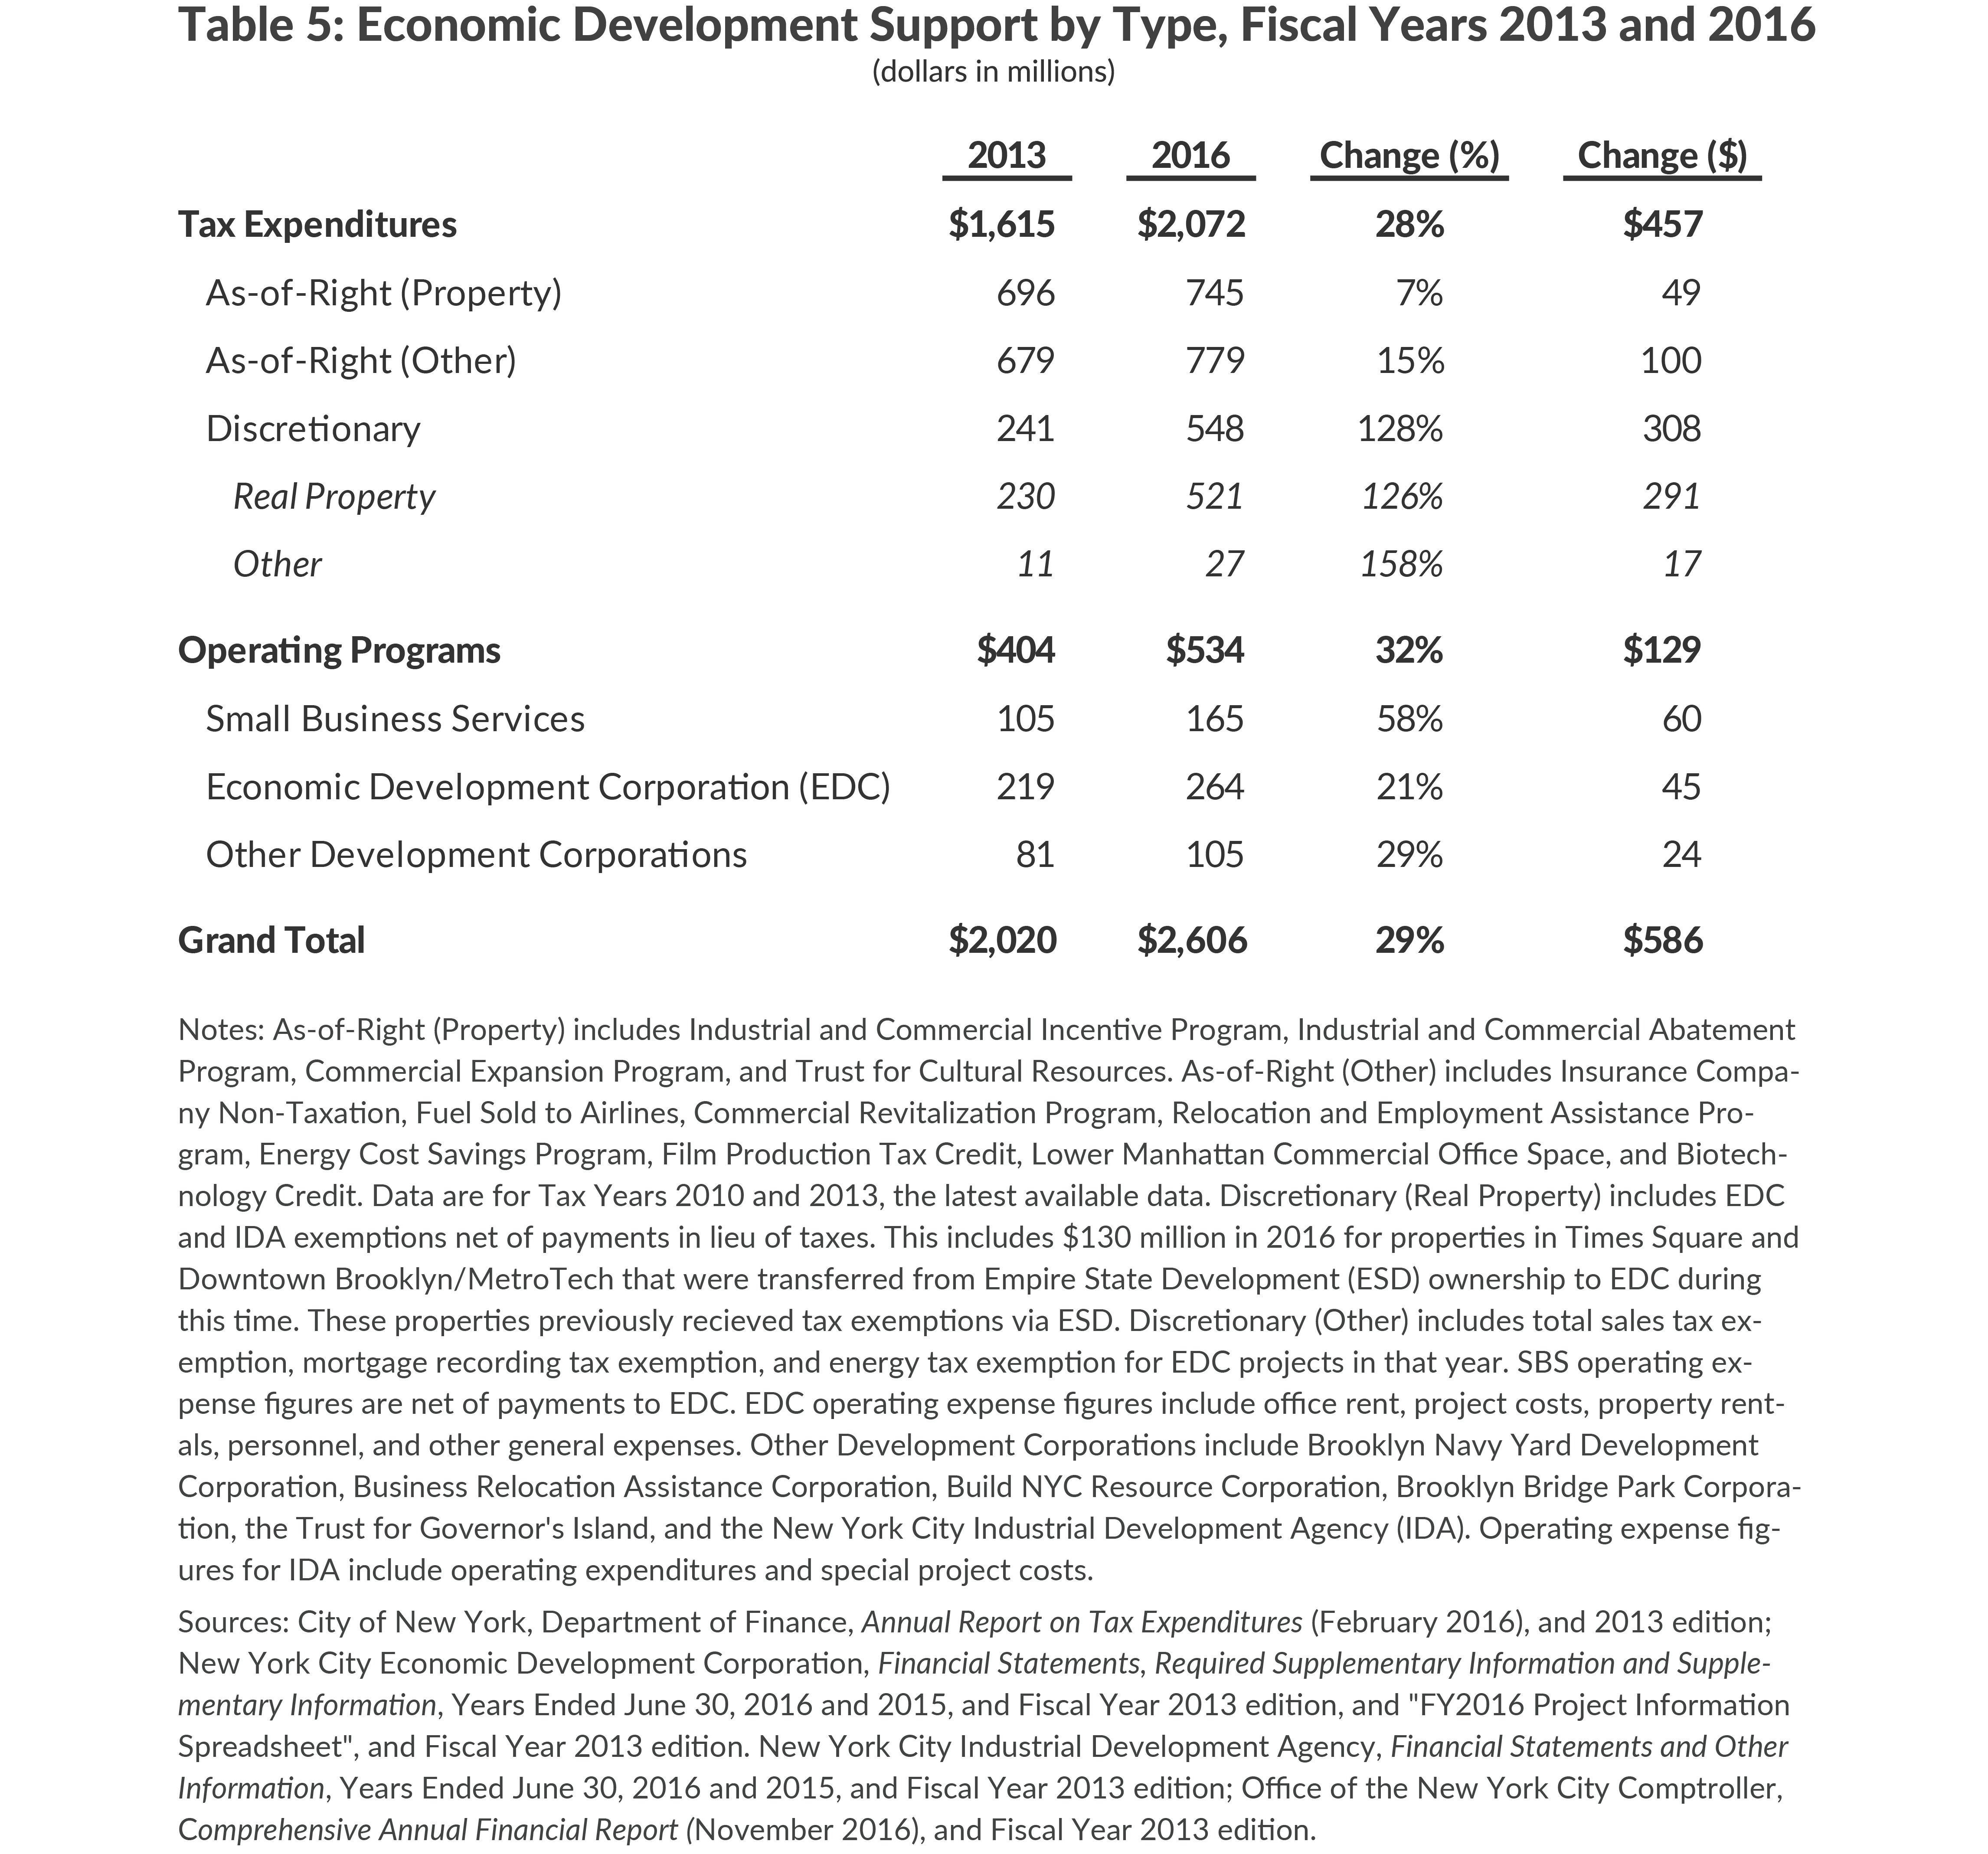 Economic Development Support by Type, Fiscal Years 2013 and 2016